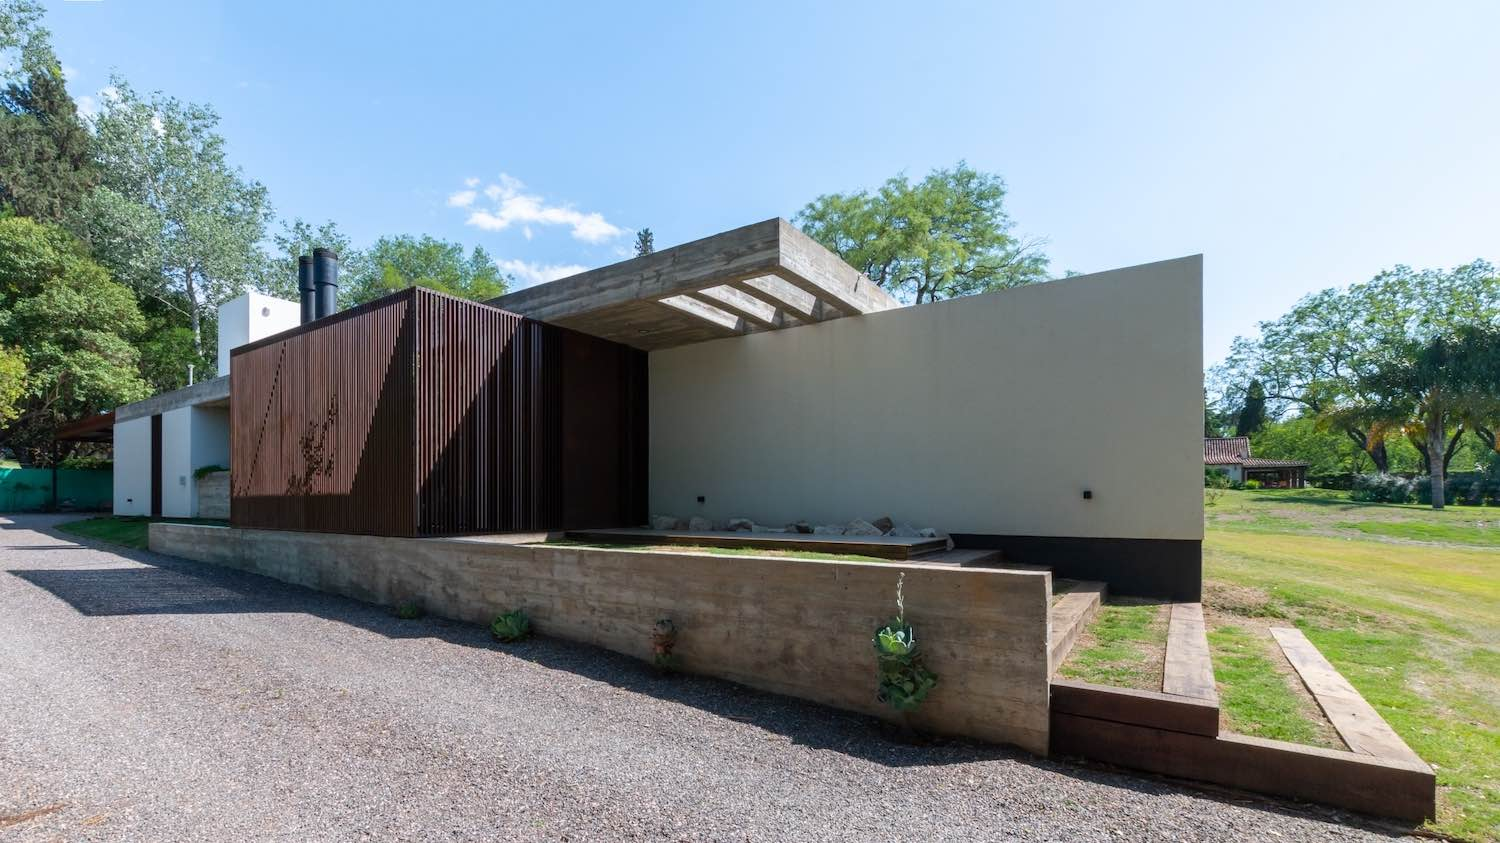 concrete, wood and metal used as the exterior material for this house